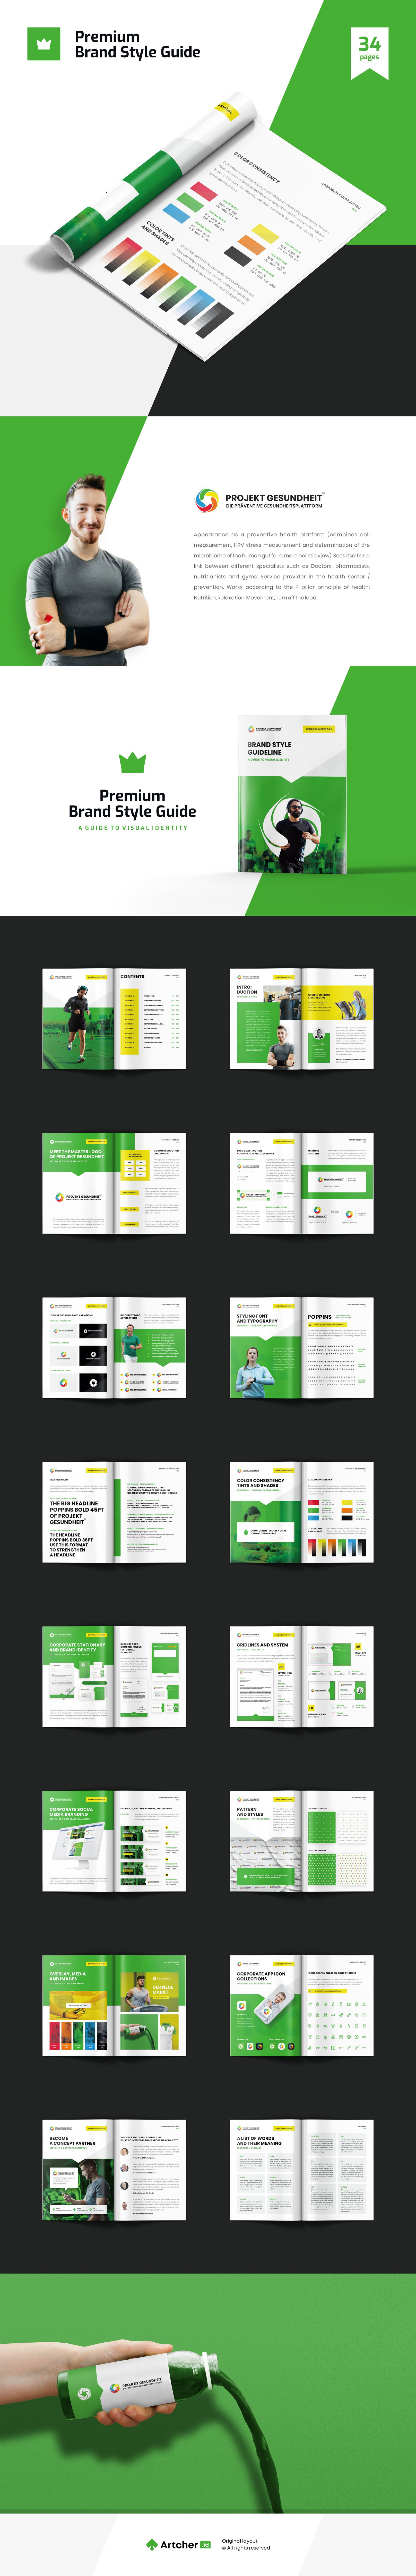 Projekt Gesundheit - Identity Manual, Styleguide and Collaterals